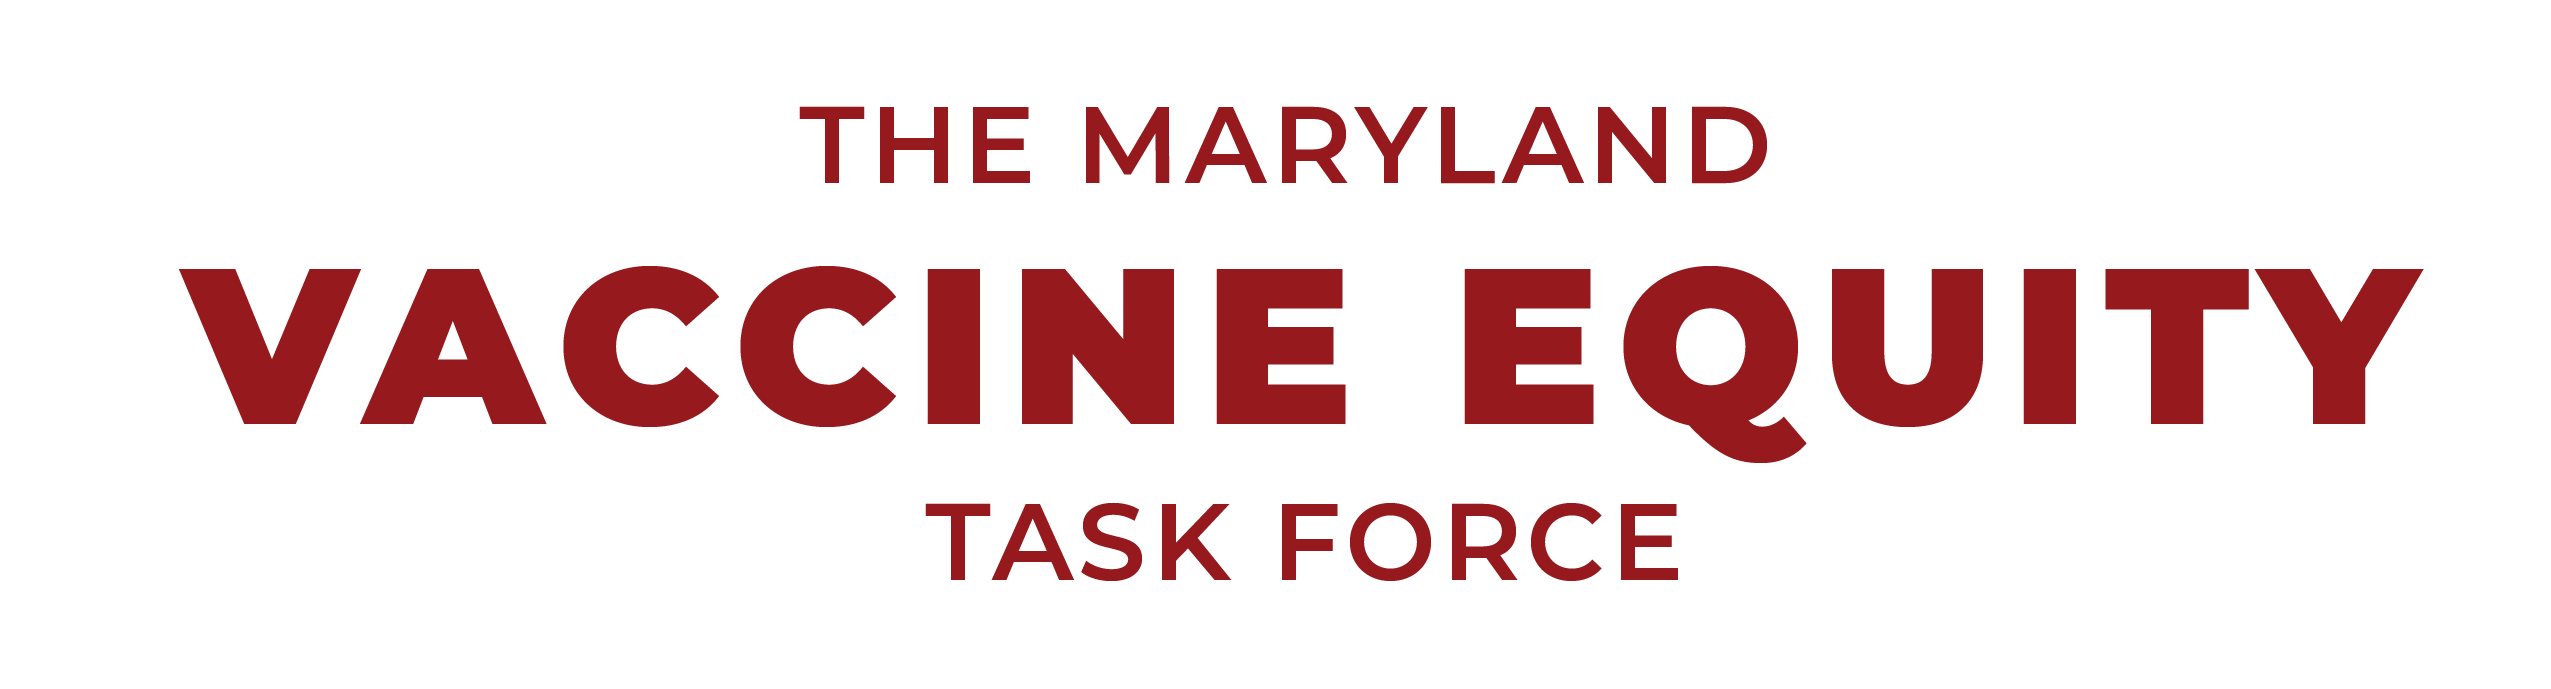 THE MARYLAND VACCINE EQUITY TASK FORCE